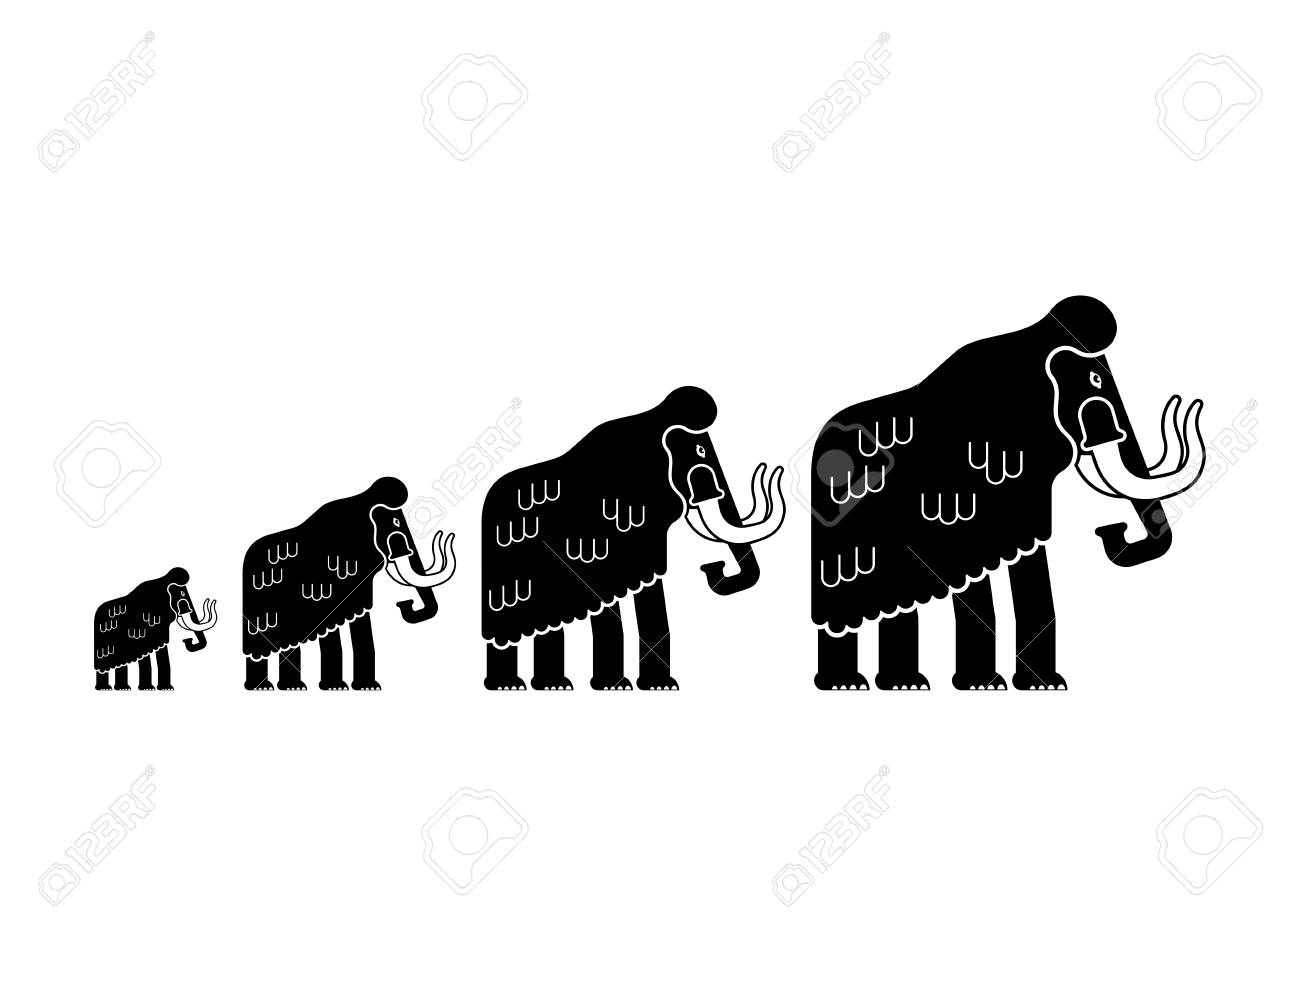 Isolated Silhouettes Of Elephants - Vector - Download Free Vectors, Clipart  Graphics & Vector Art